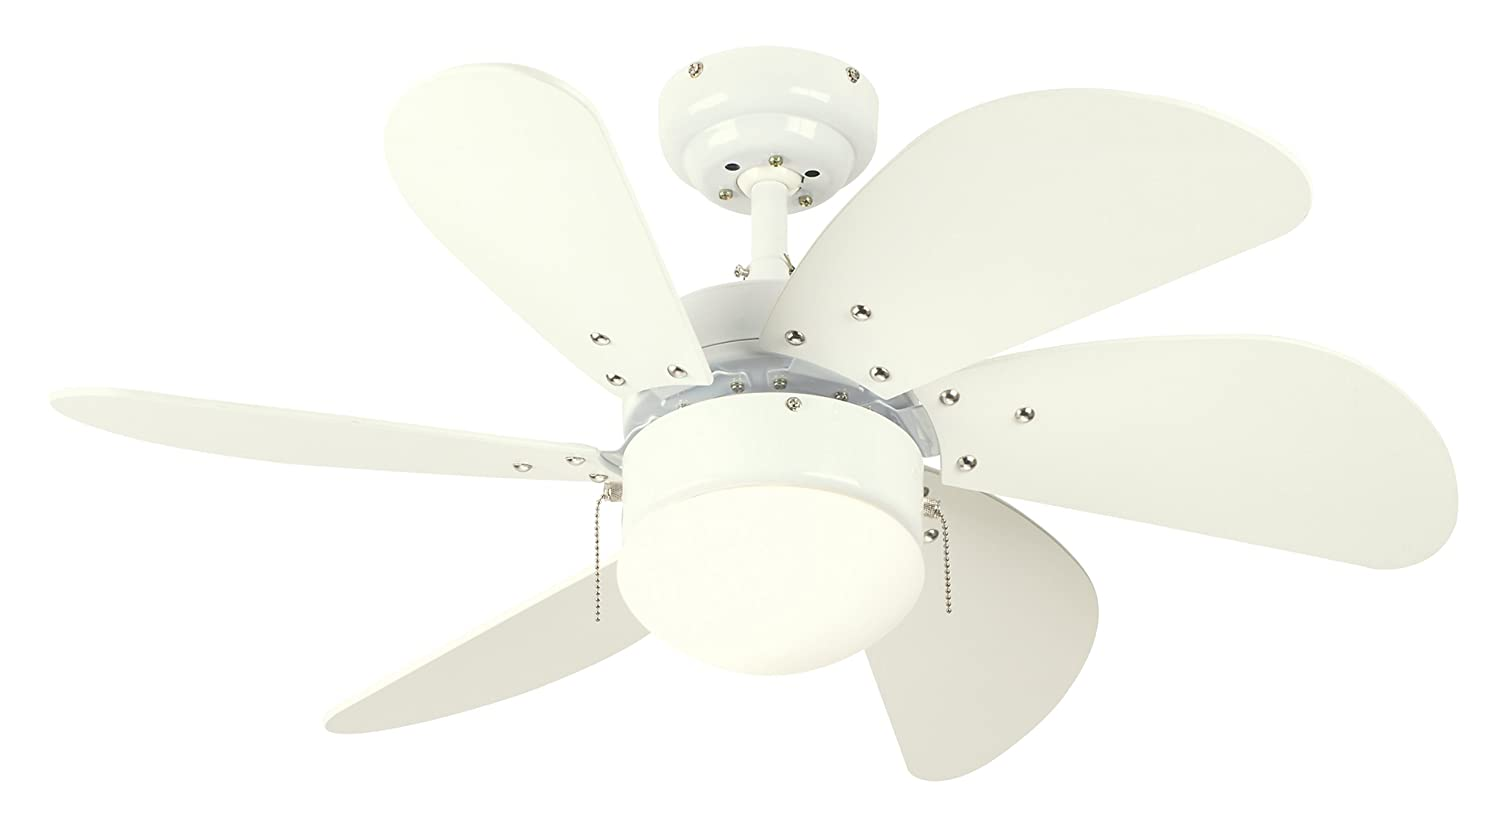 Westinghouse 7814520 turbo swirl single light 30 inch six blade westinghouse 7814520 turbo swirl single light 30 inch six blade indoor ceiling fan white with opal frosted glass amazon aloadofball Images